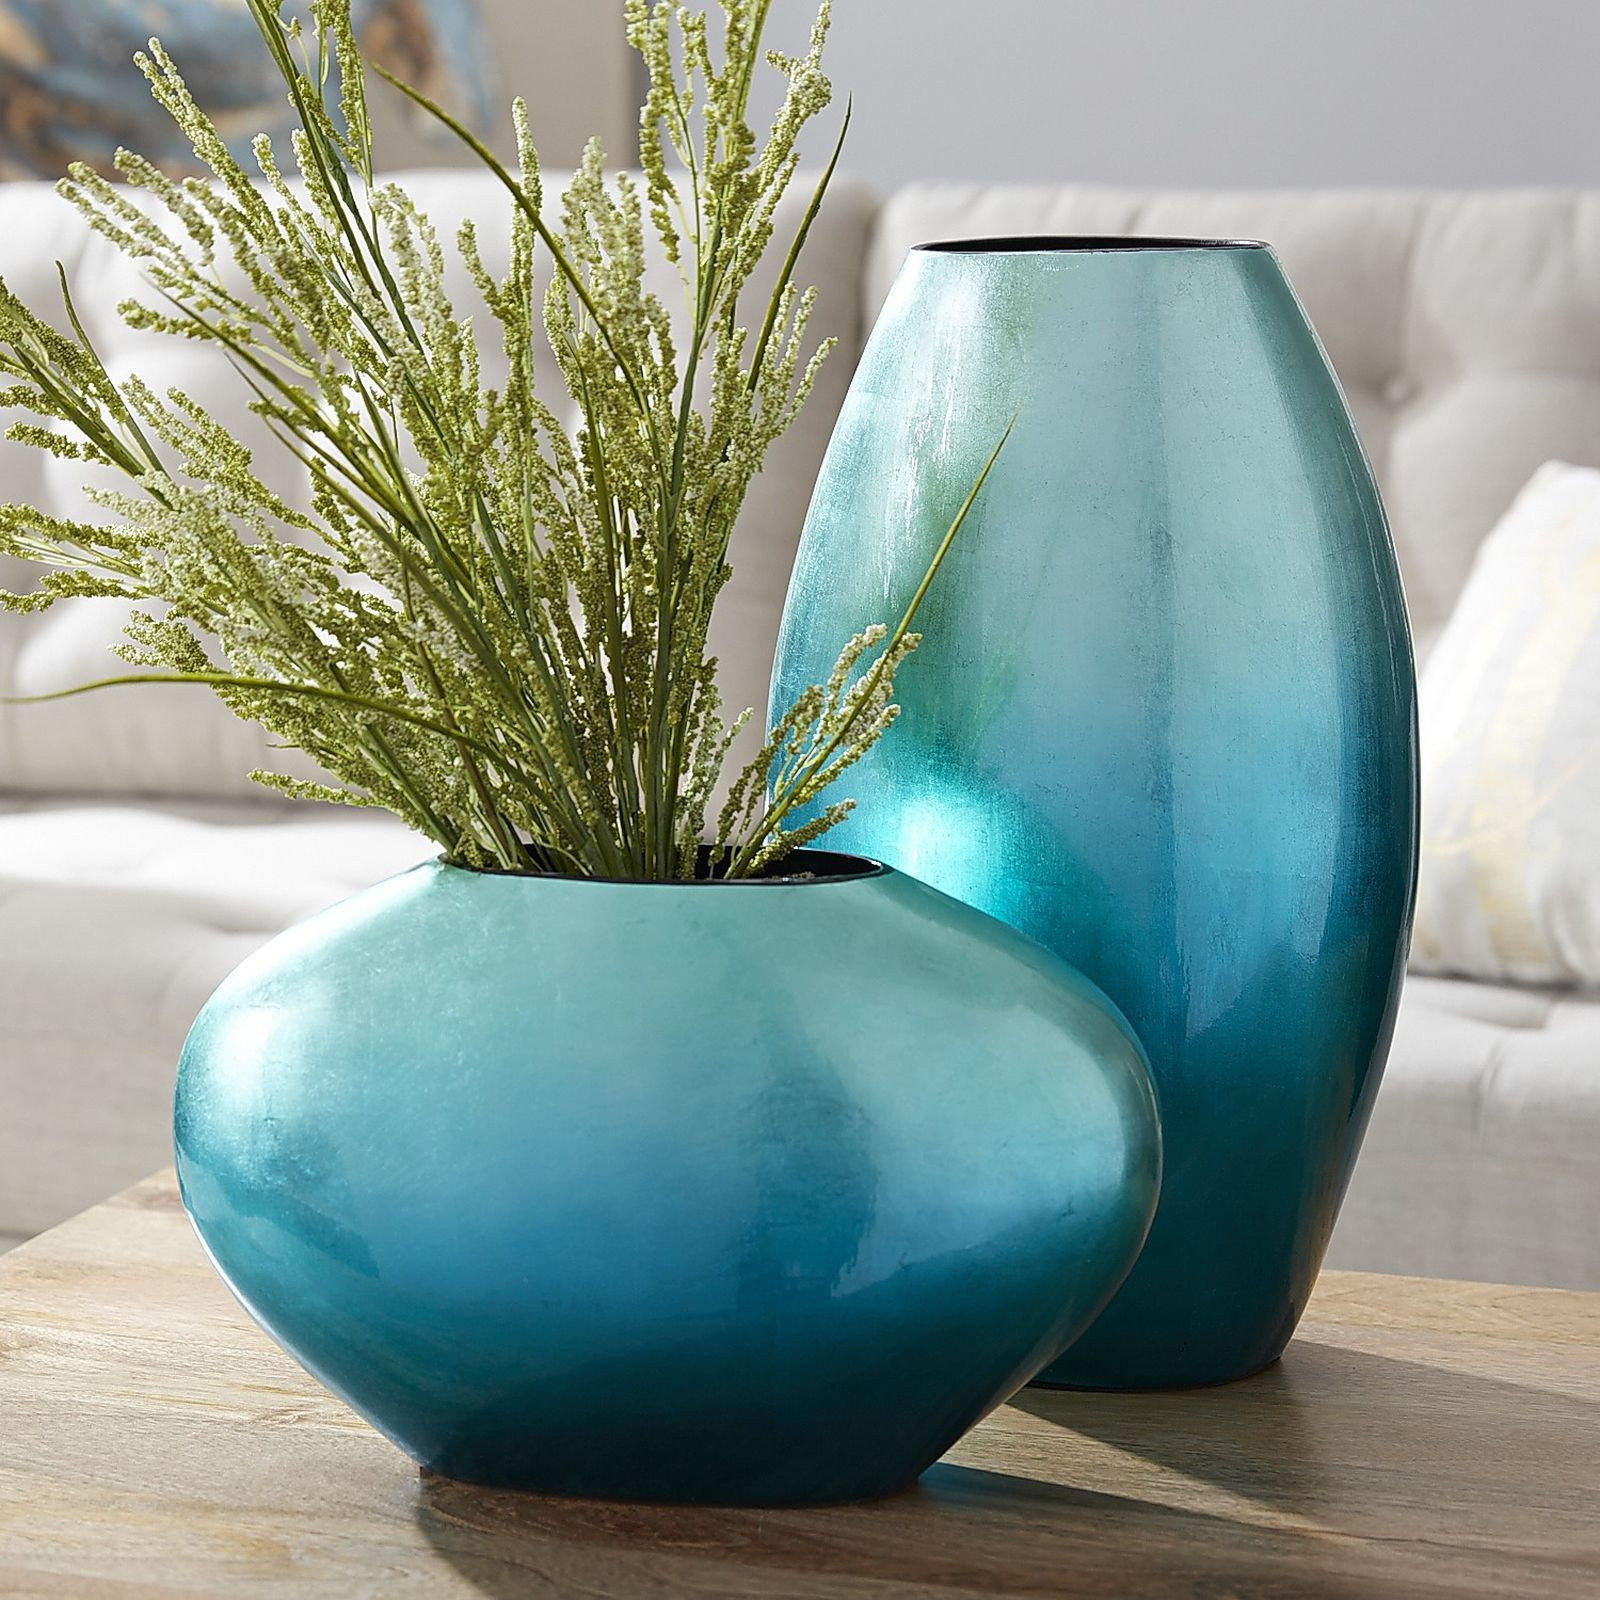 Daum Nancy Vase Prices Of Pier 1 Vases Stock Living Room Floor Vase Best H Vases Oversized Intended for Pier 1 Vases Photos Sinuous Lines and Iridescent Color Make these Ceramic Vases True Of Pier